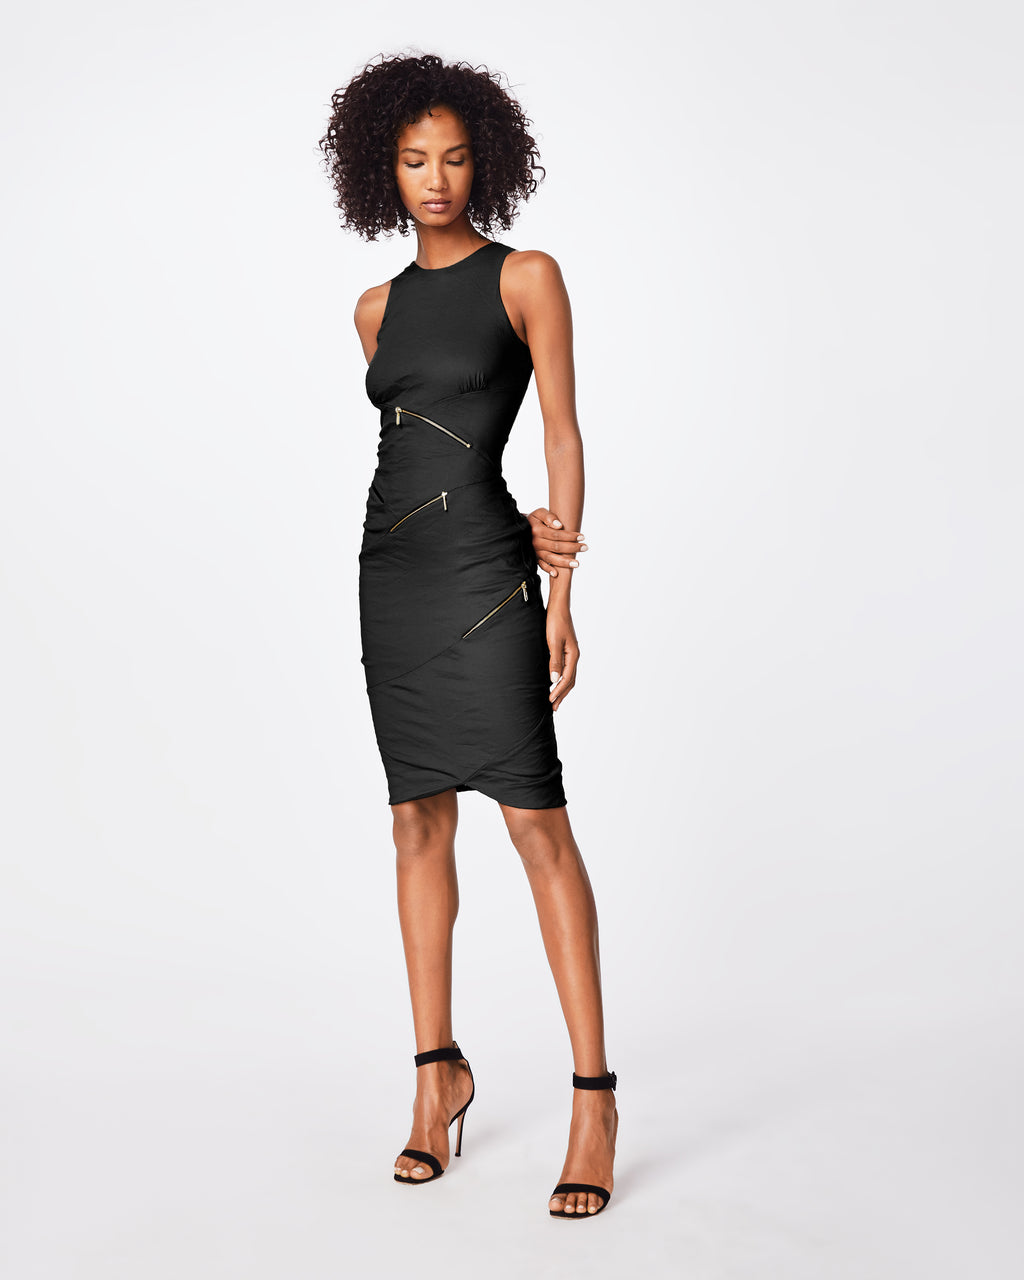 CA10254 - SOLID COTTON METAL ZIPPER DRESS - dresses - short - In our iconic cotton metal, this ruched dress features exposed zippers for a little something extra kind of look. The high neckline and fitted bodice to the knee makes it a flattering fit.